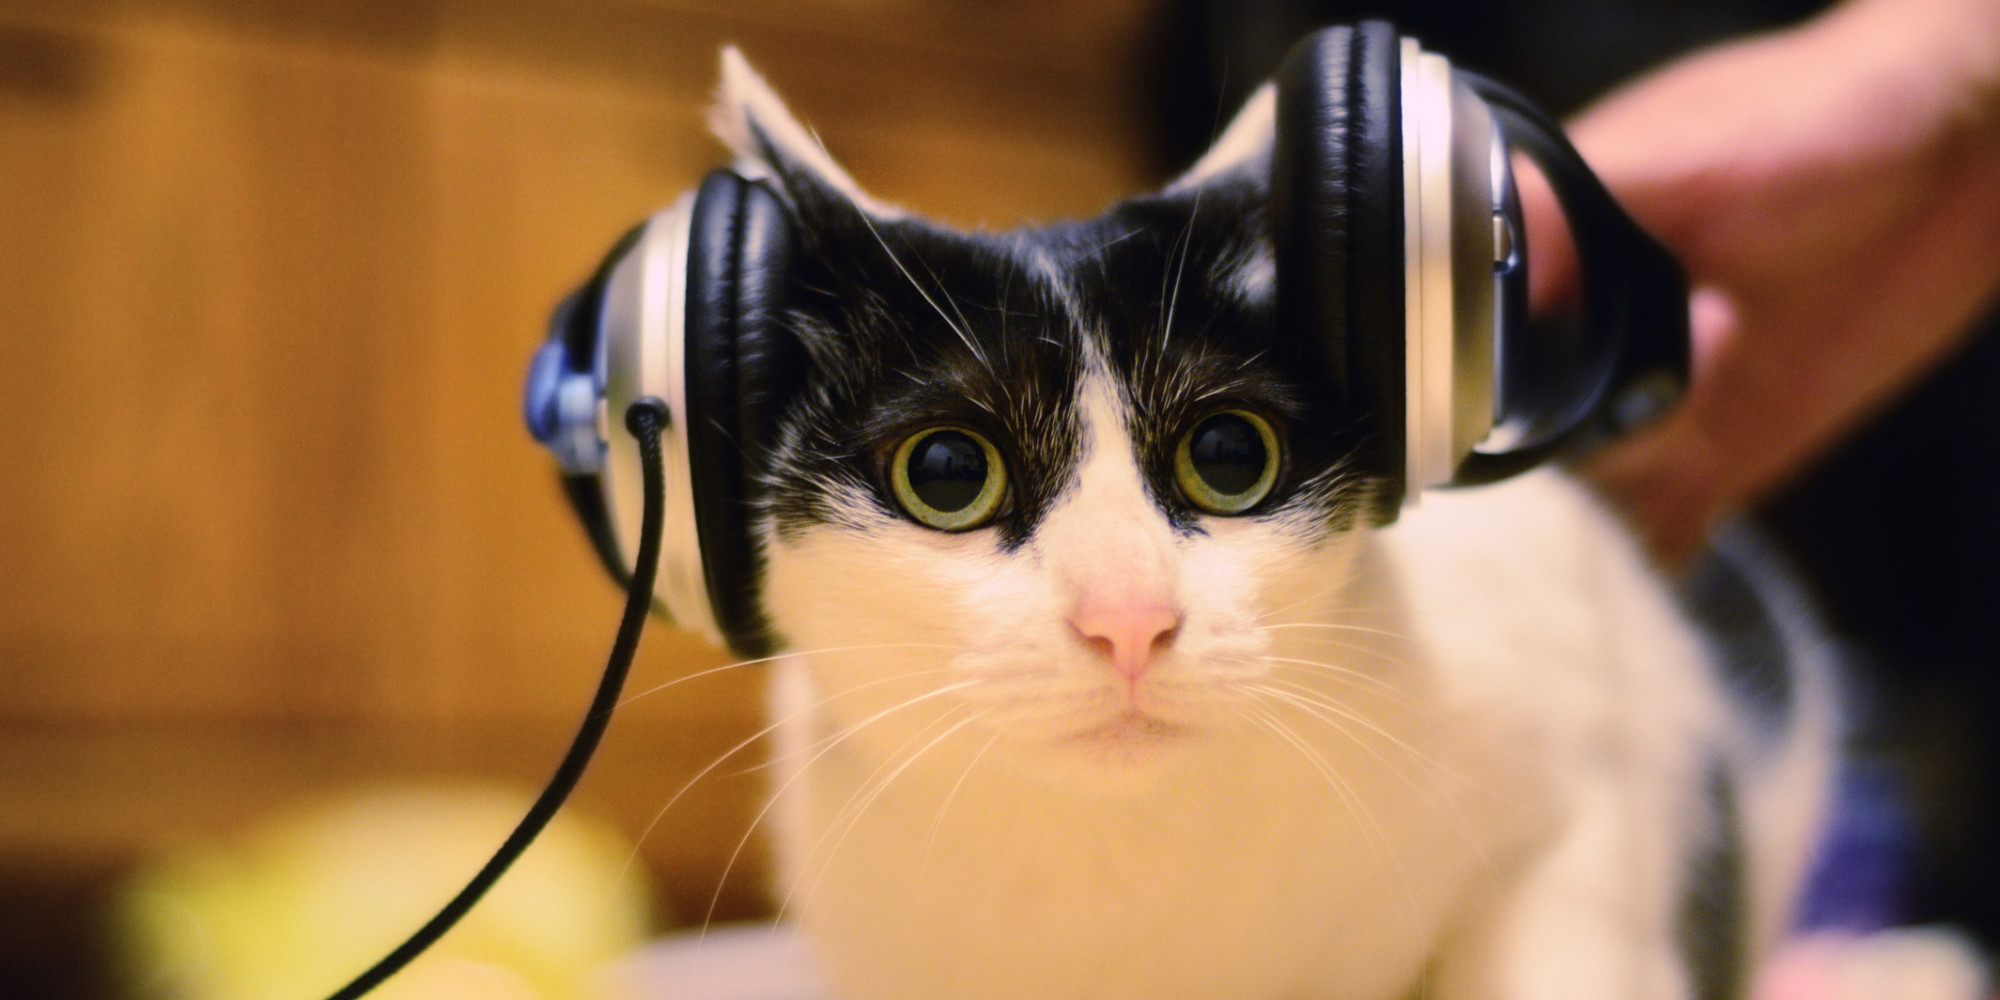 Cute cat with headphones